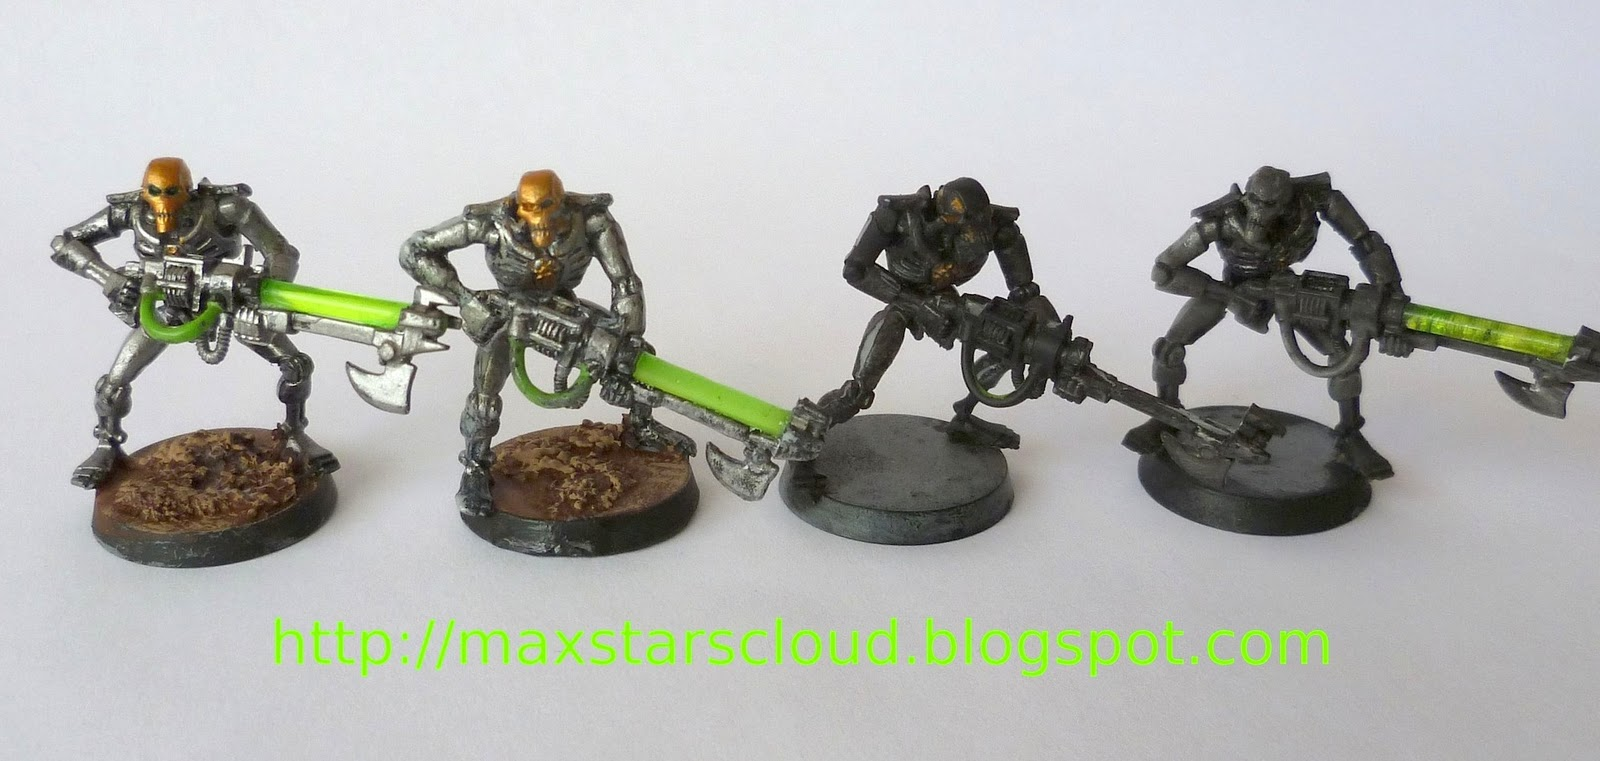 Model Paint Remover Tutorial: How To Remove Paint From Plastic Models